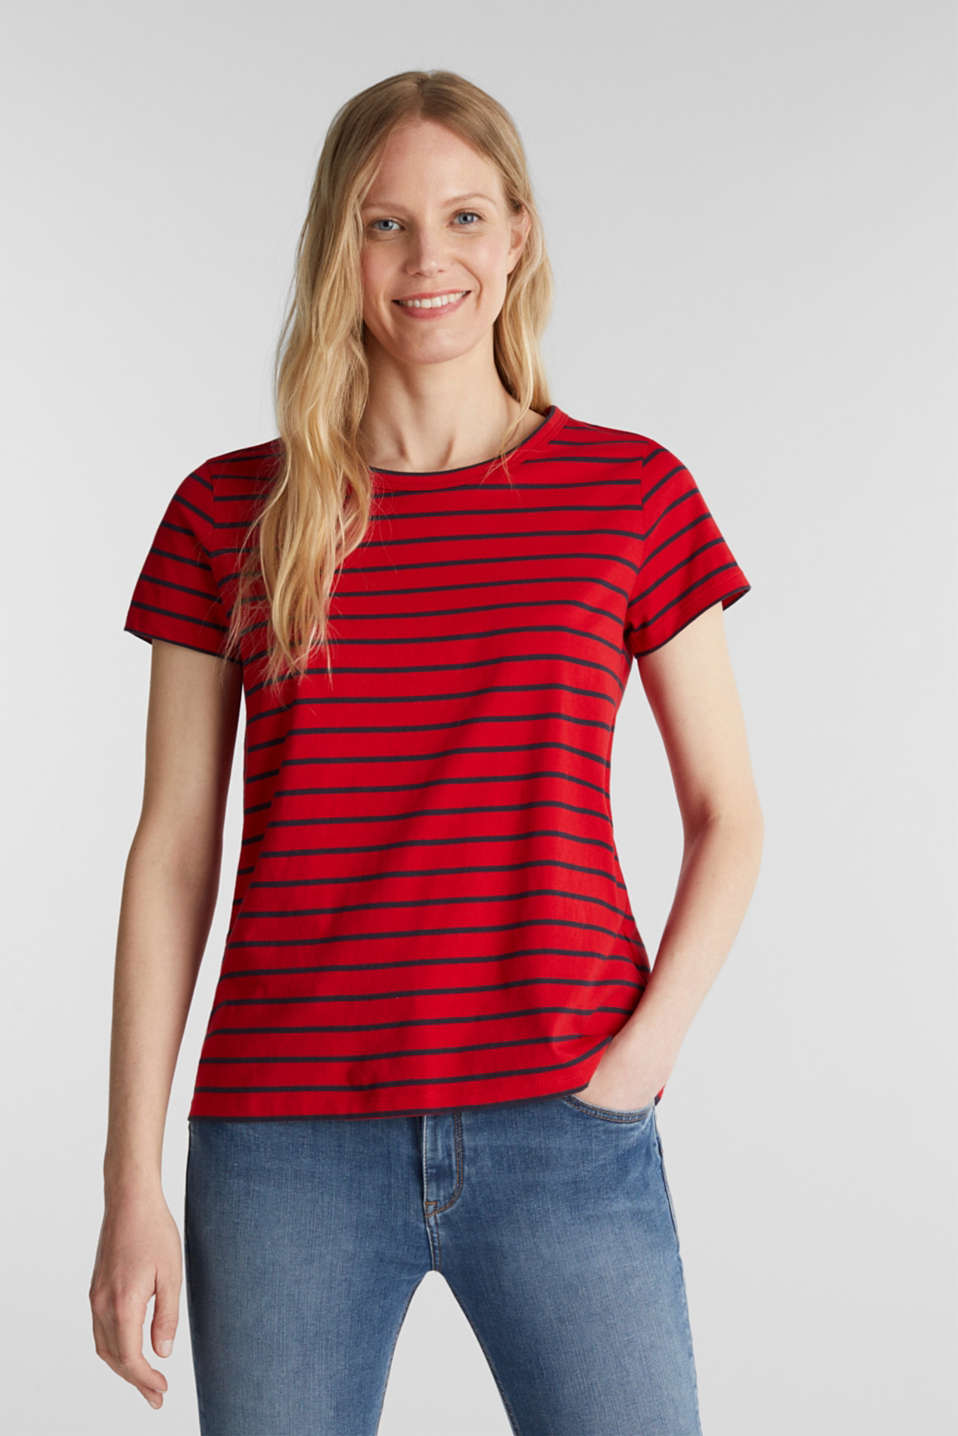 Esprit - T-shirt with stripes, 100% cotton